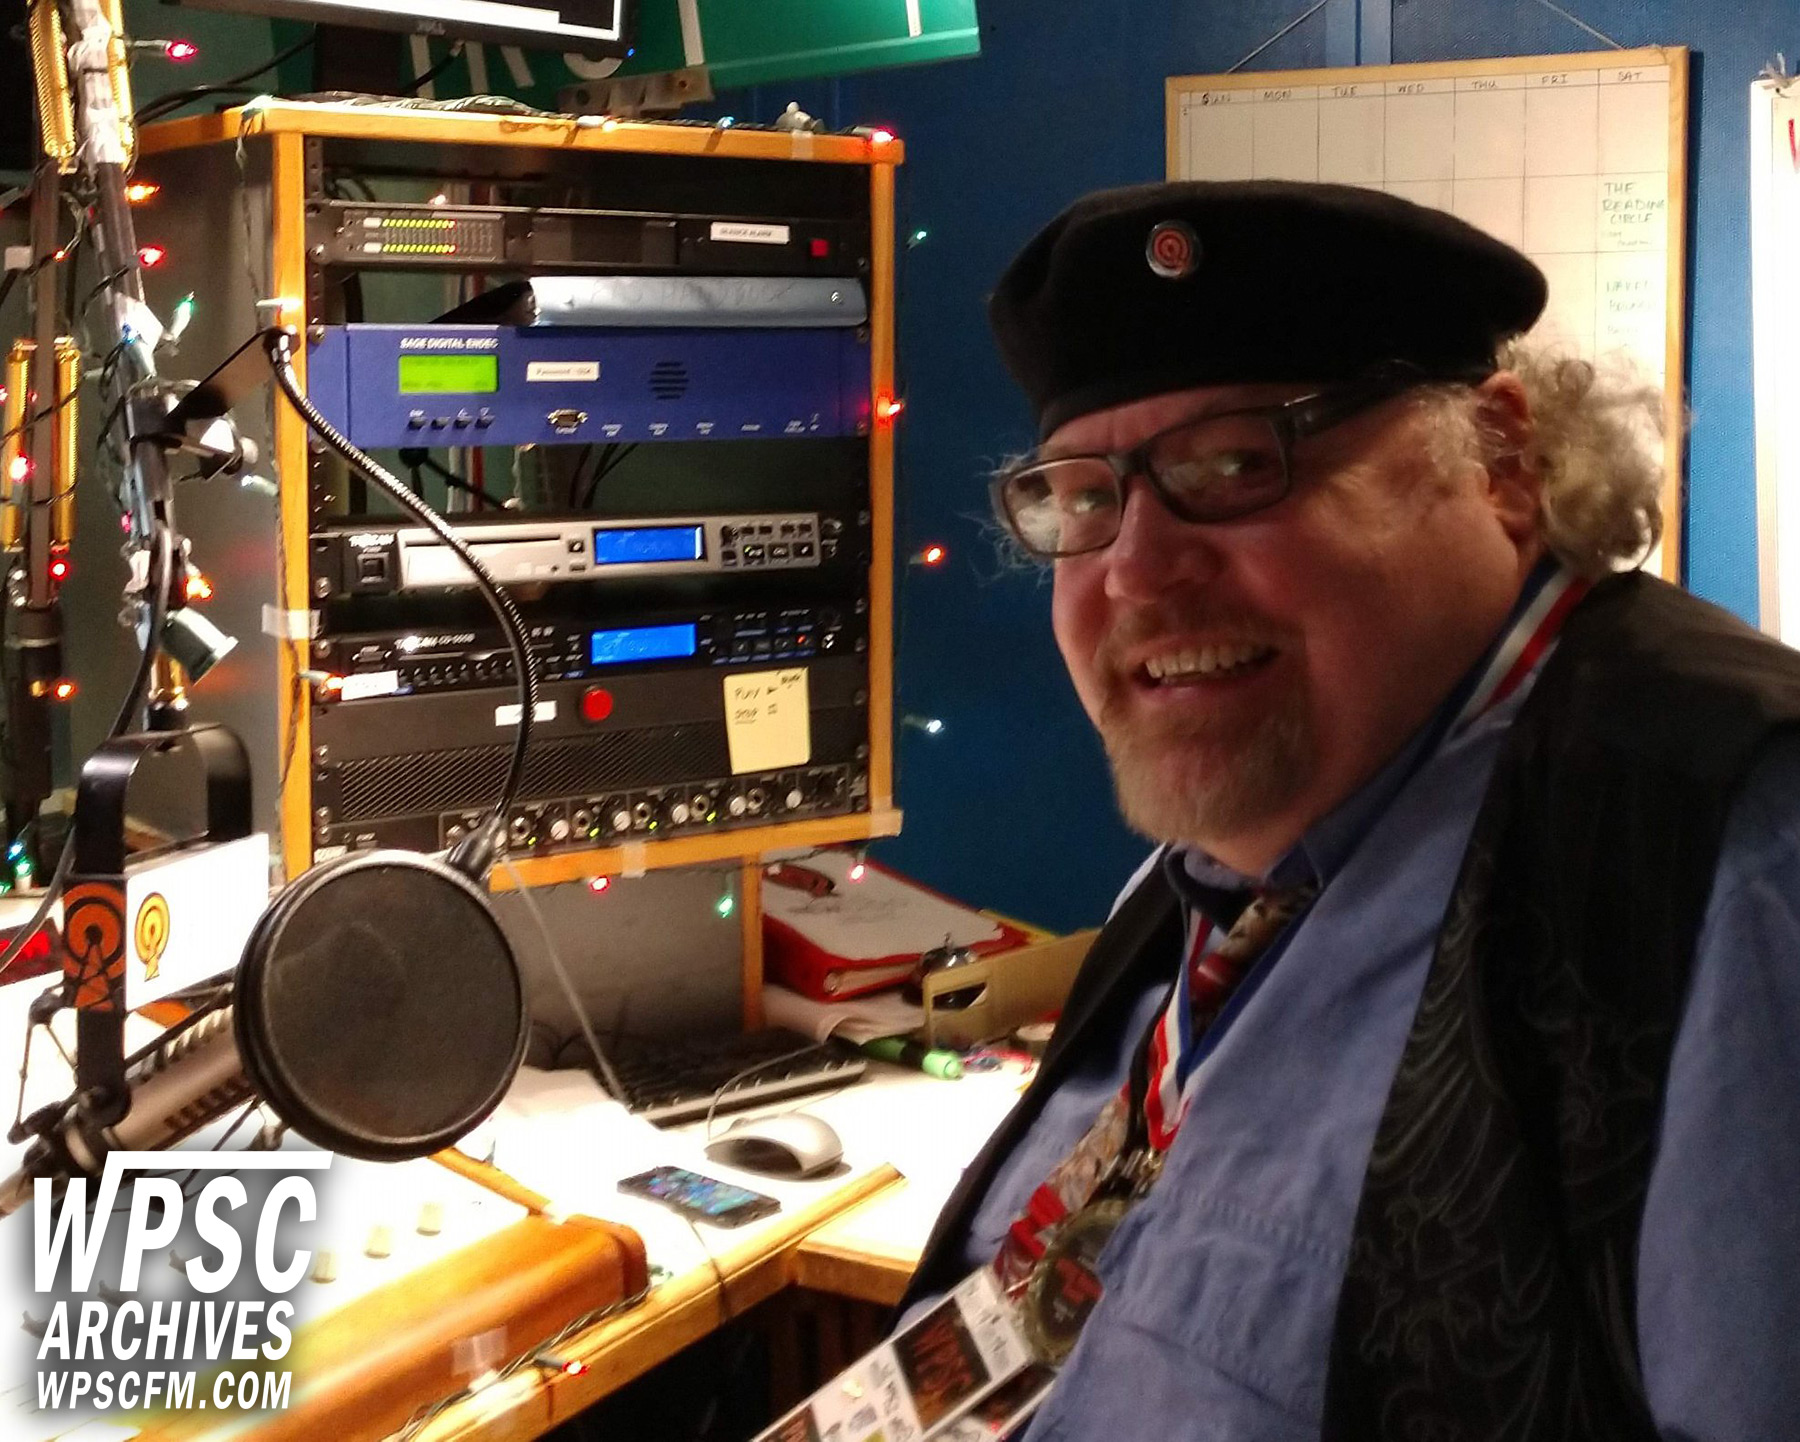 Rich Ottenstroer On Air At WPSC-FM